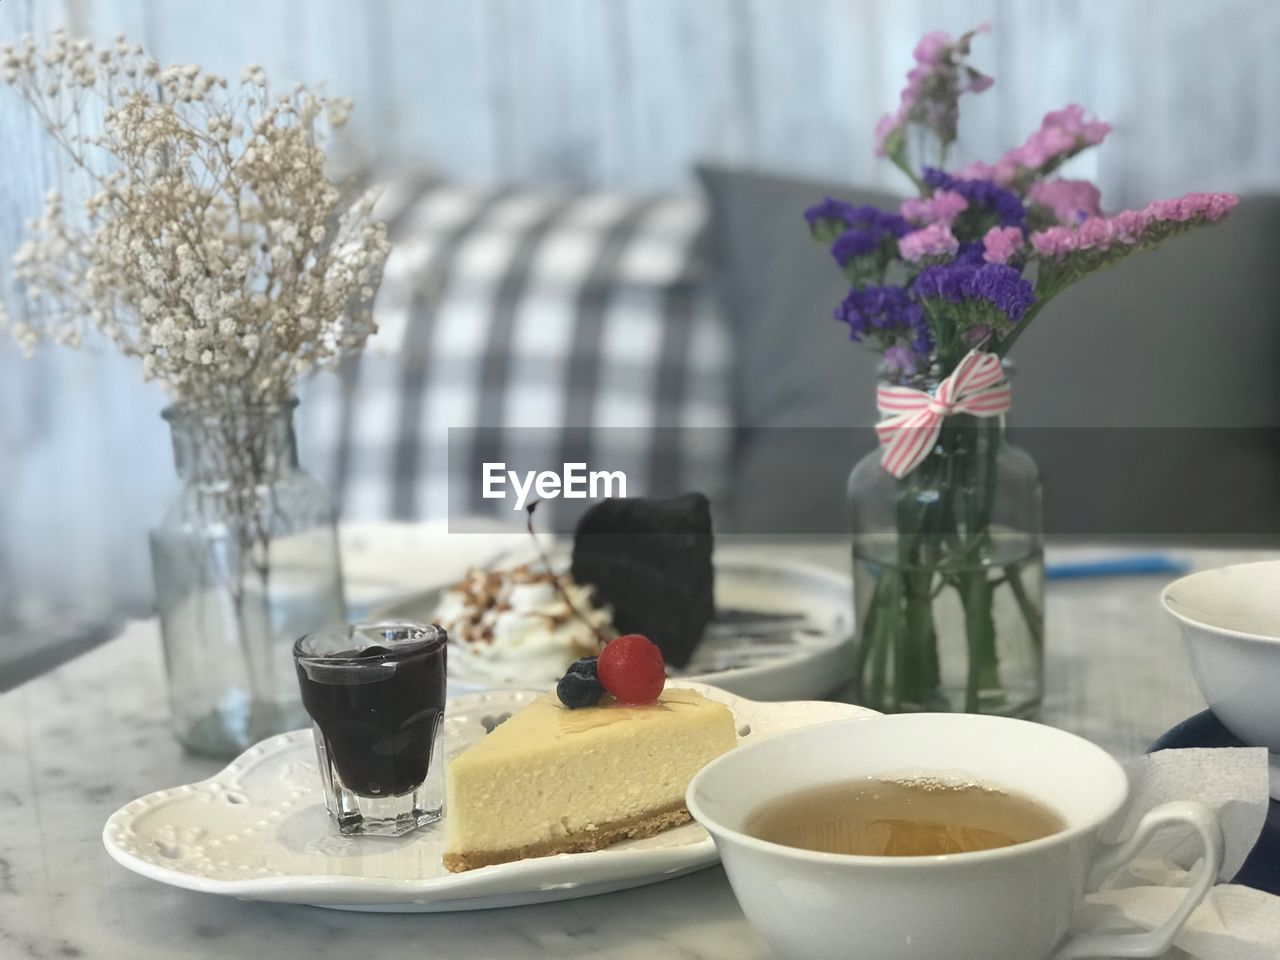 table, freshness, food and drink, drink, vase, flower, flowering plant, food, refreshment, plant, no people, plate, cup, ready-to-eat, still life, focus on foreground, coffee cup, mug, nature, indoors, glass, breakfast, meal, temptation, flower arrangement